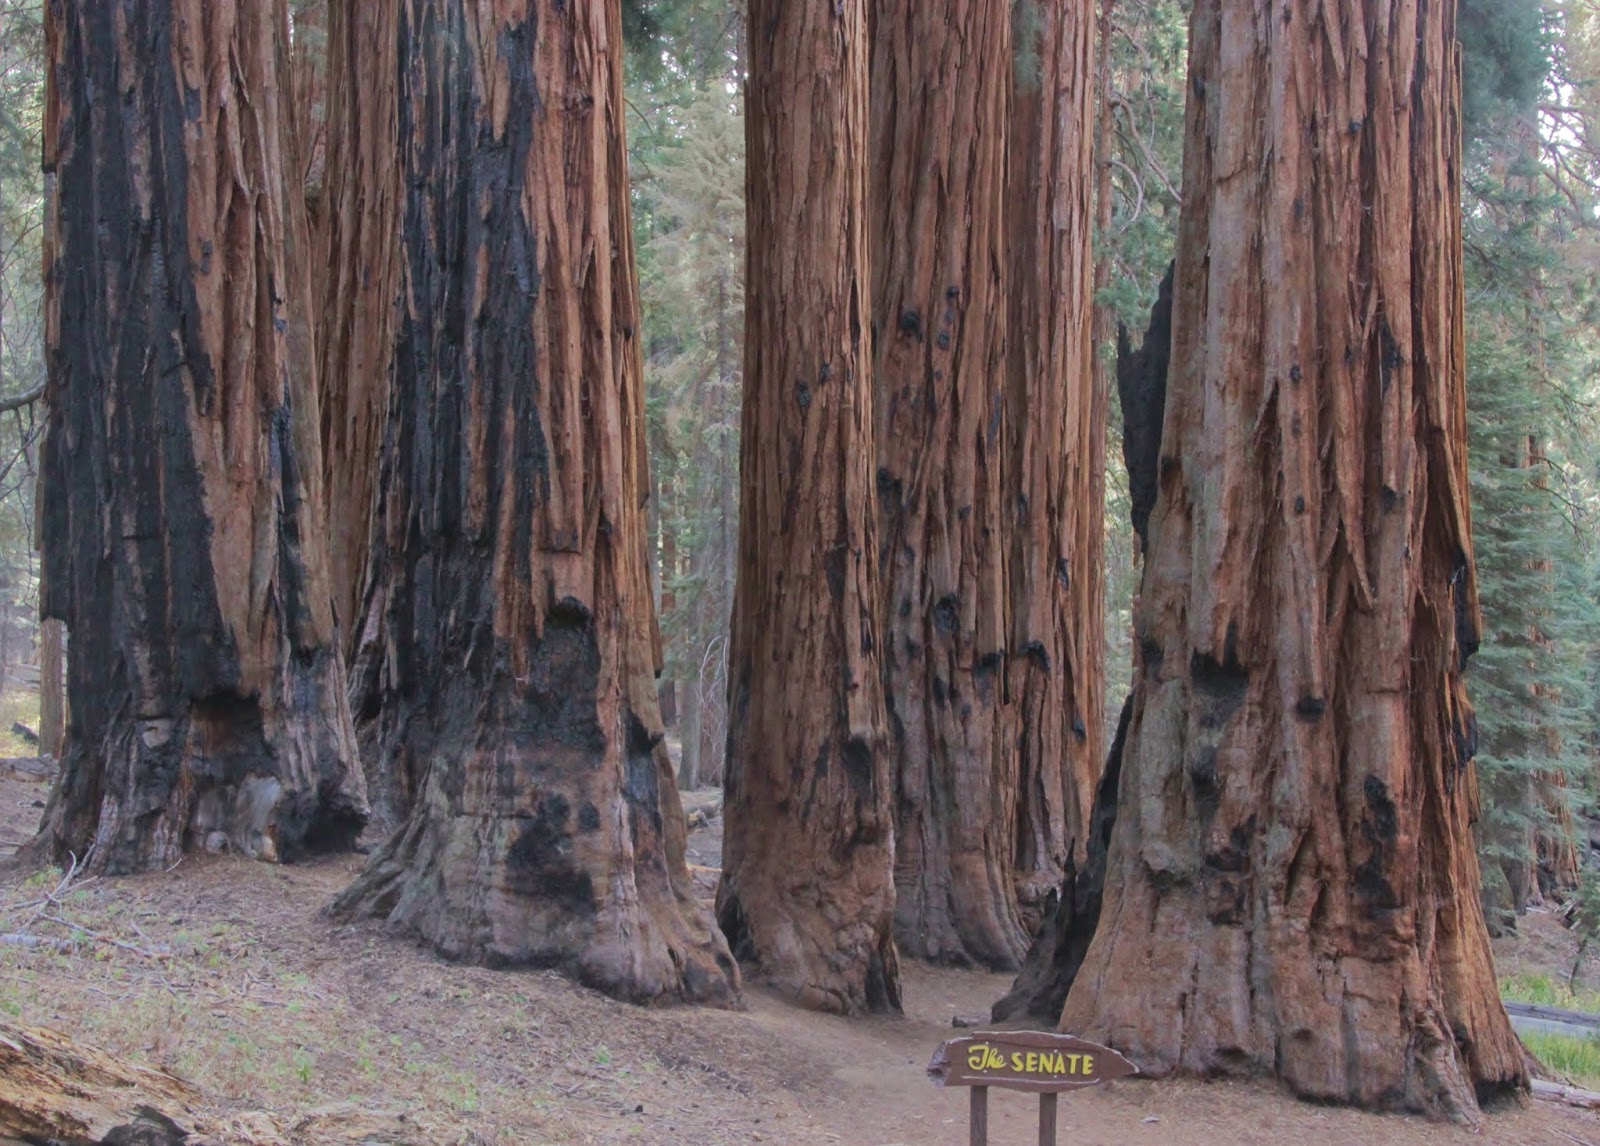 The Senate Giant Sequoia Trees